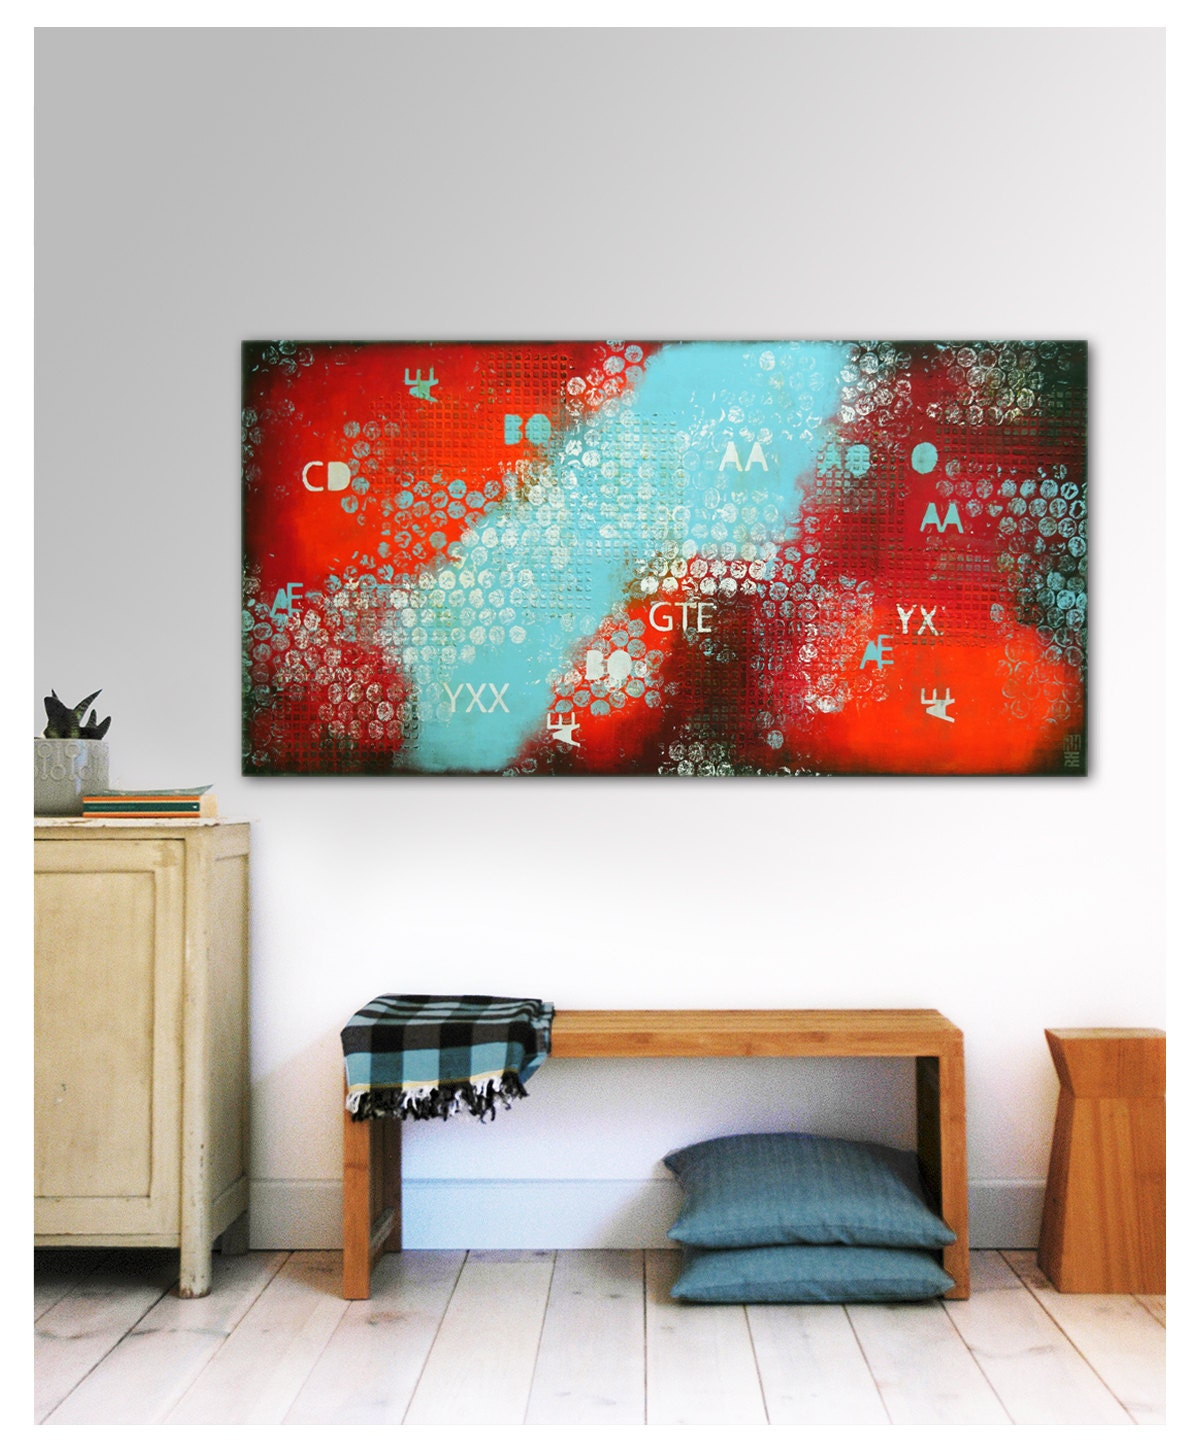 Acrylic Painting Wall Decor Orange Red And Blue By. Glass Barn Door. Ceiling Fans With Lights. Riddell Plumbing. Farmhouse Counter Stools. Etagere. Rain Chains Lowes. Living Room Ideas For Apartment. Standard Kitchen Sink Size